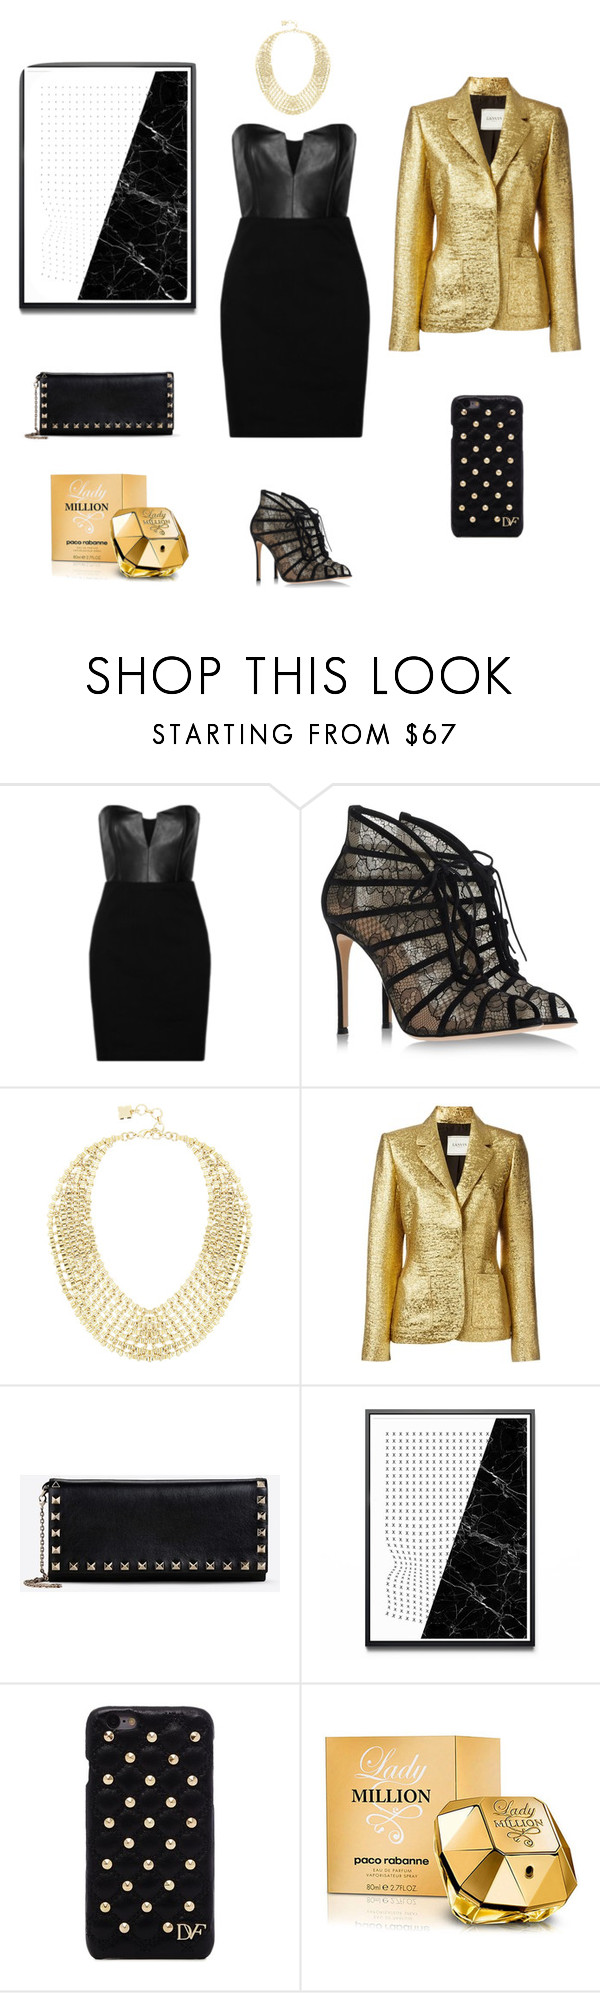 """Untitled #125"" by sanjati ❤ liked on Polyvore featuring Mason by Michelle Mason, Gianvito Rossi, BCBGMAXAZRIA, Lanvin, Valentino, Diane Von Furstenberg, Paco Rabanne, women's clothing, women's fashion and women"